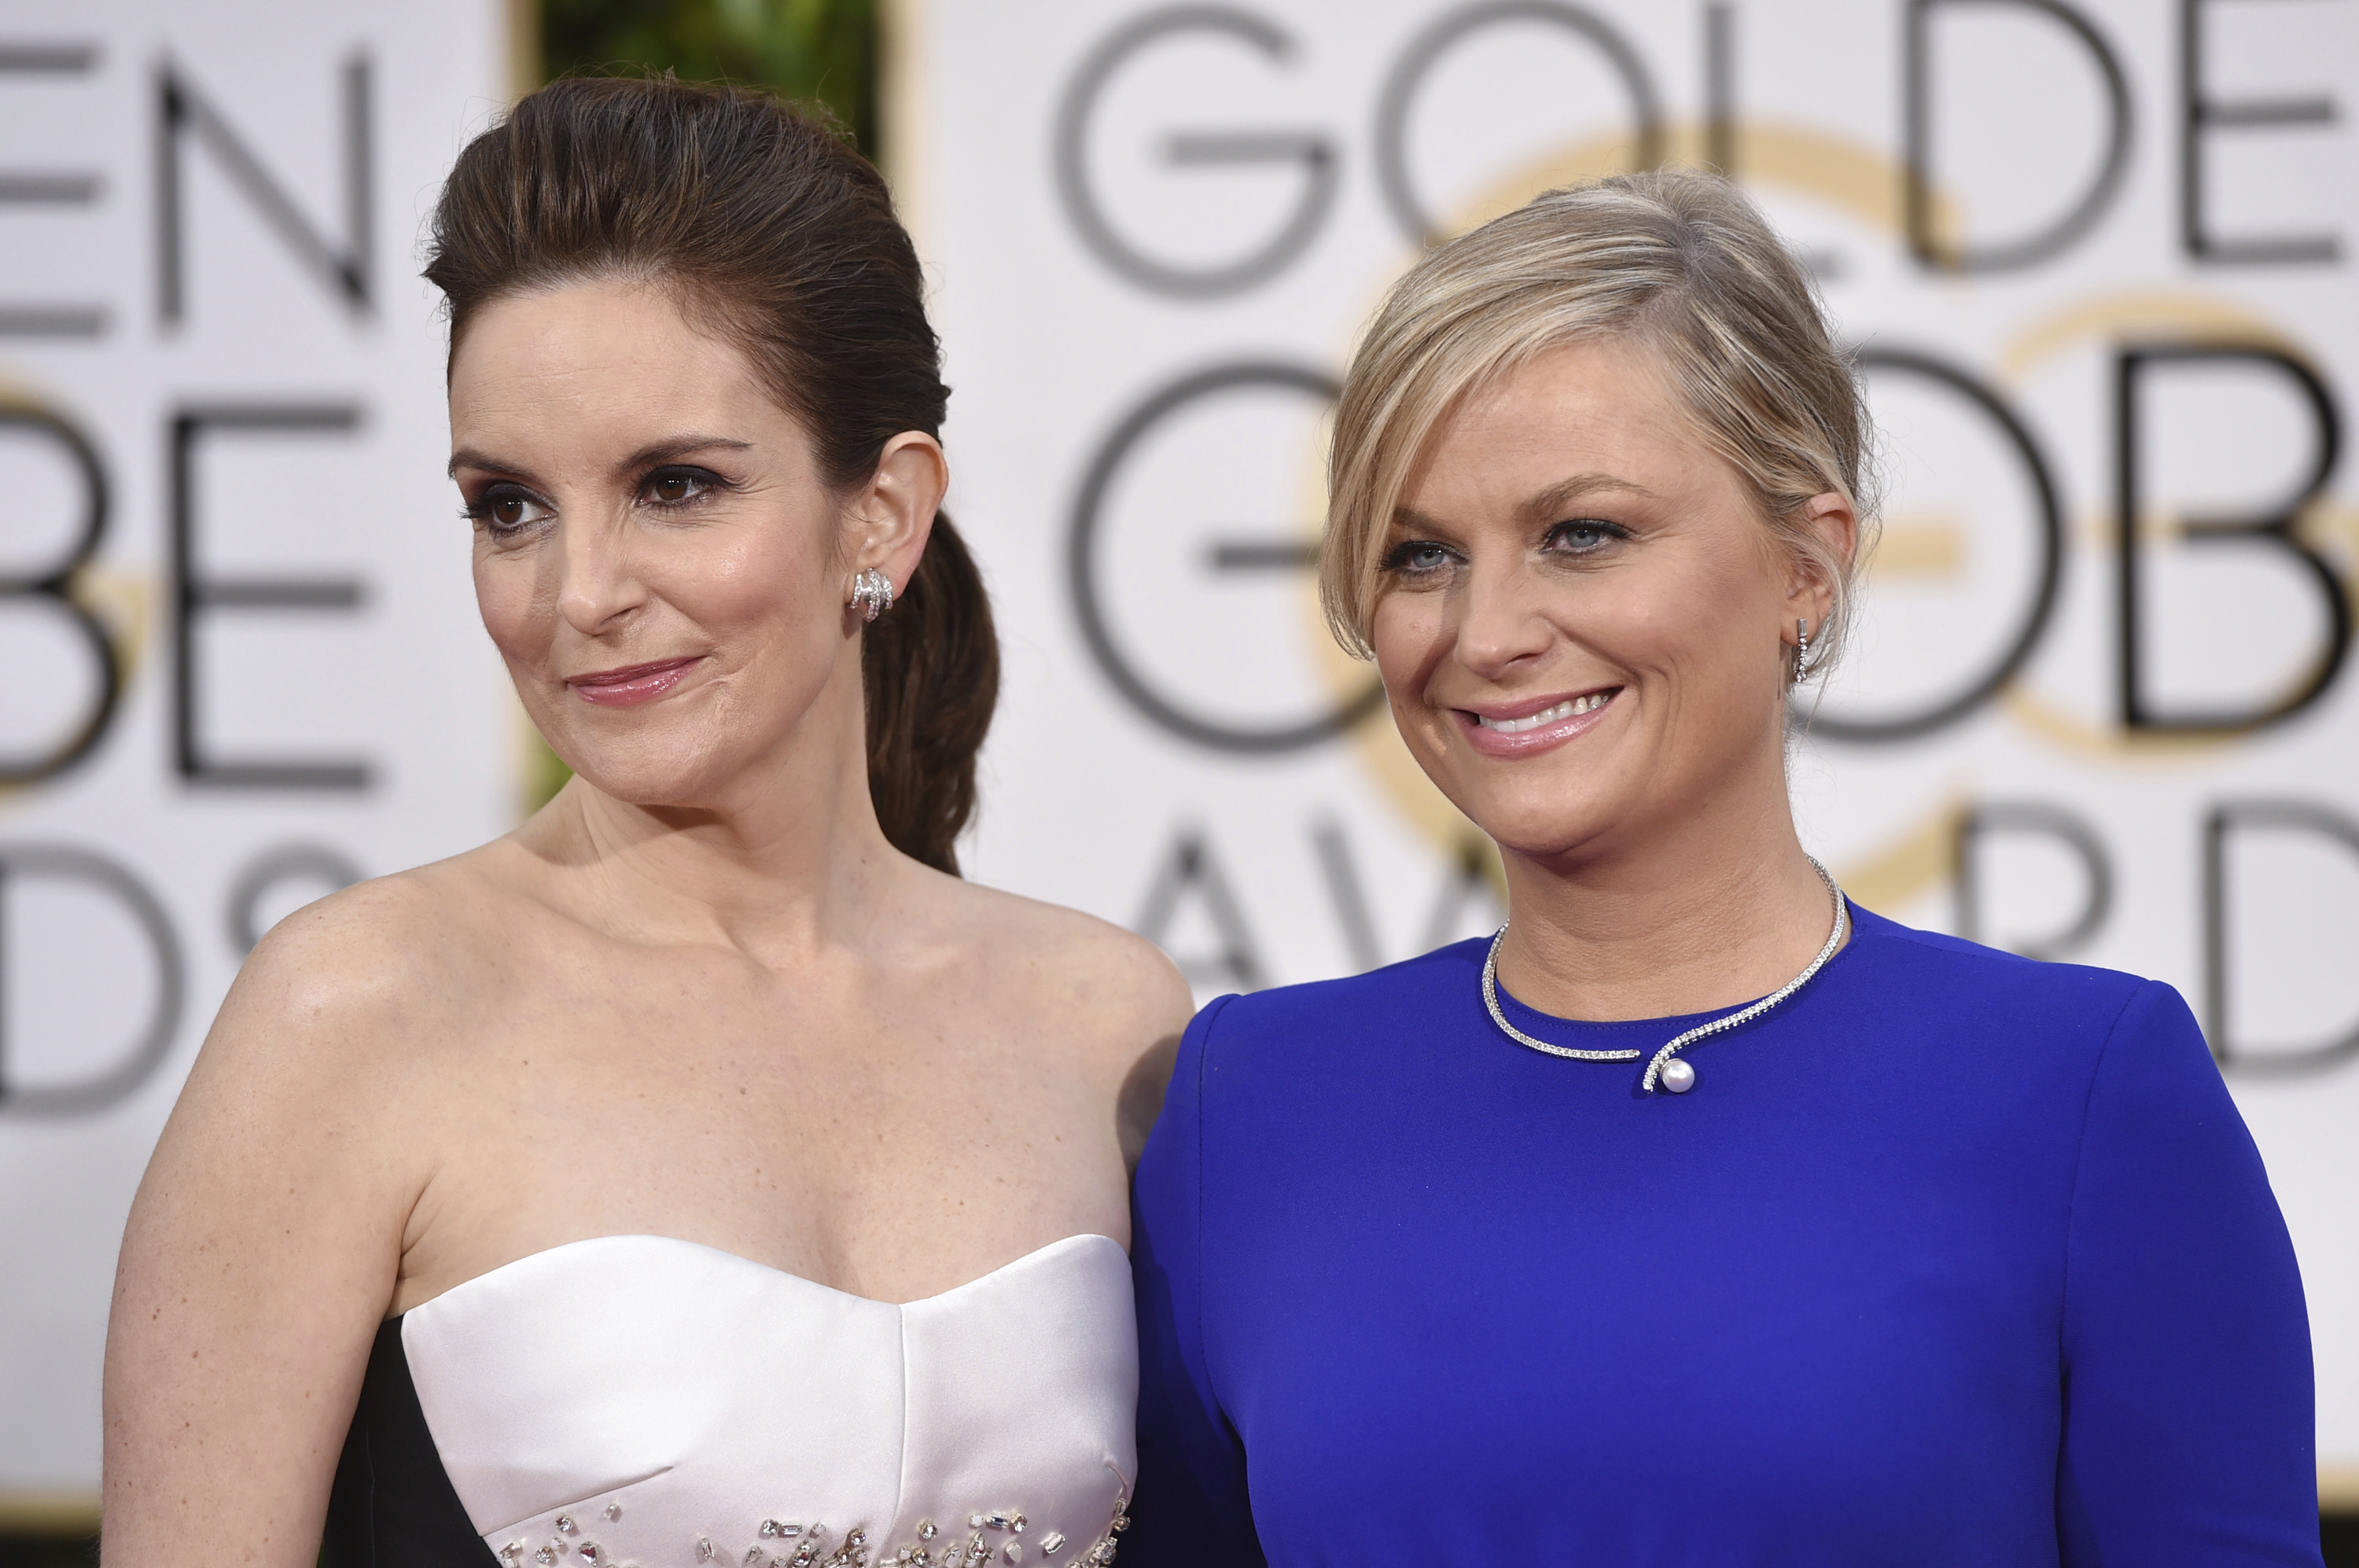 Tina Fey (left) and Amy Poehler arrive for the 72nd annual Golden Globe Awards in Beverly Hills in 2015.